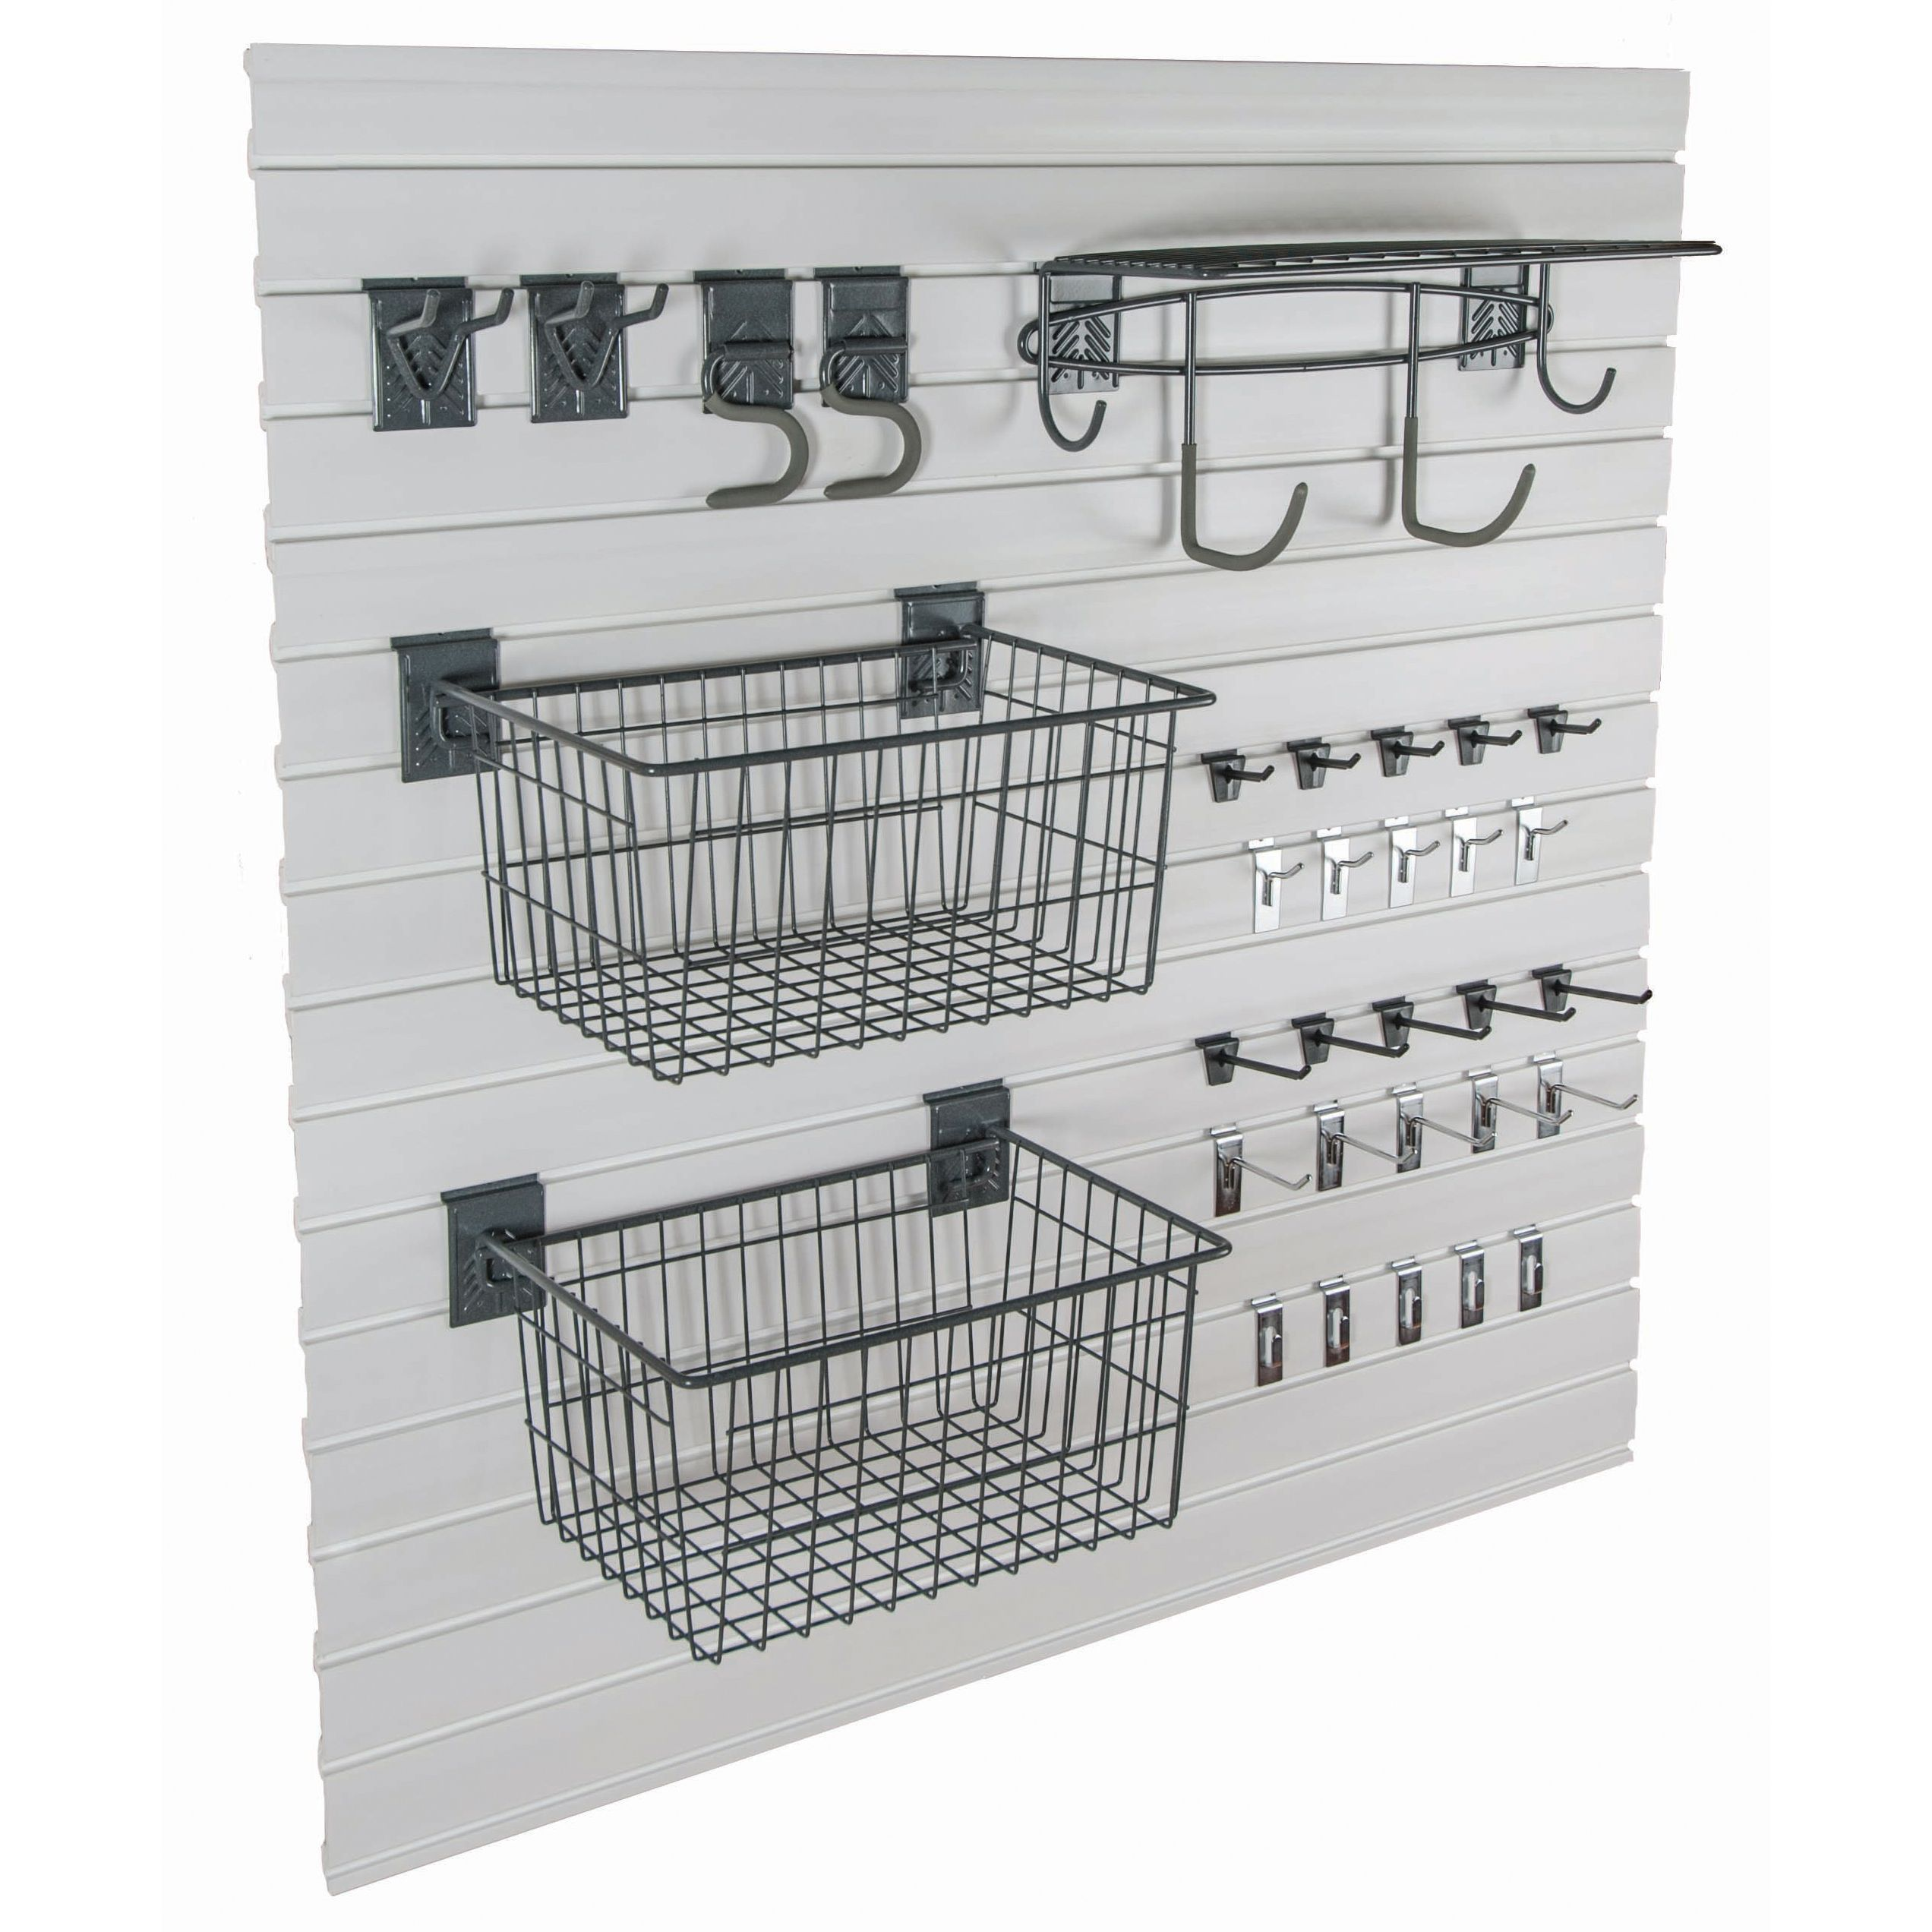 Garage Cabinets Overstock Create A 4x8 Foot Storage Organization Section In Your